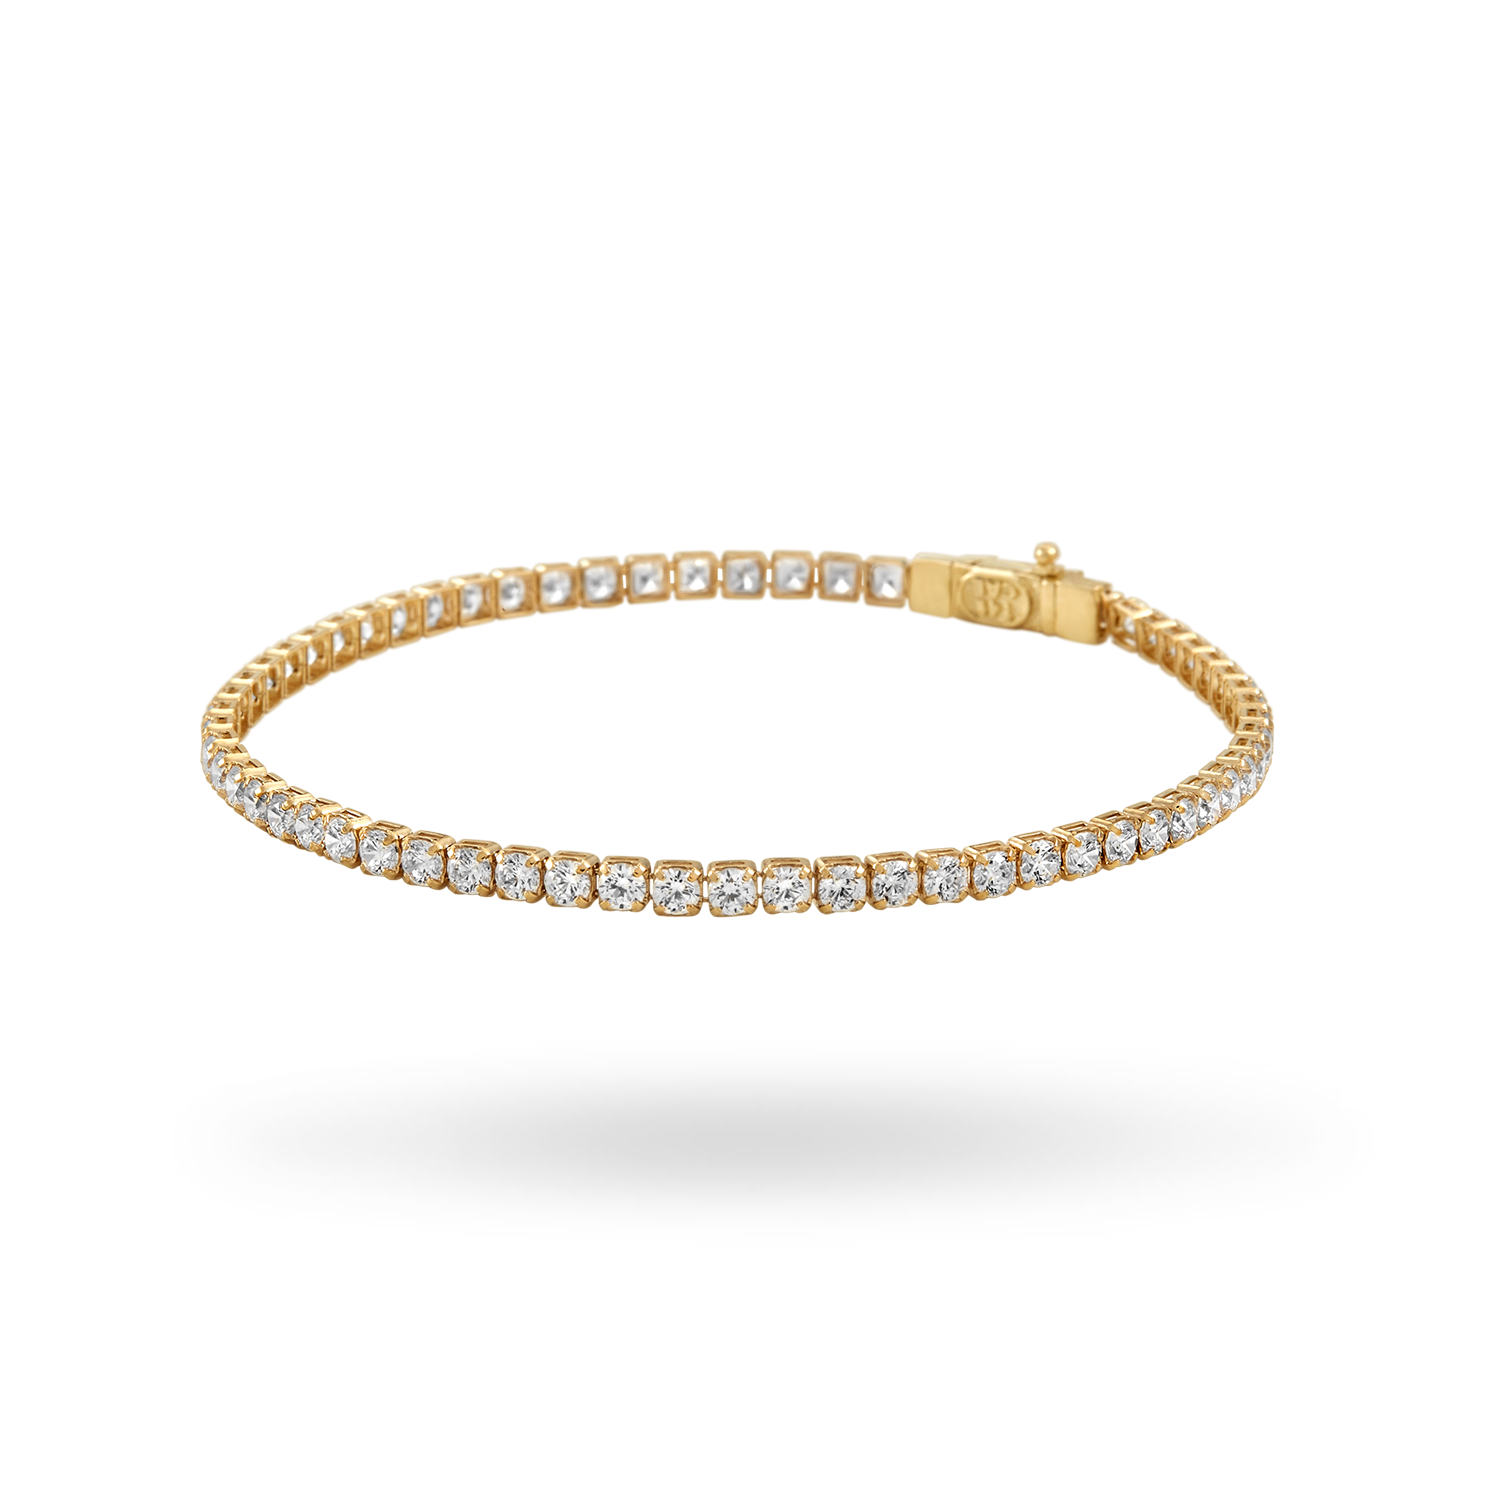 14K Gold Tennis Bracelet 2.75mm